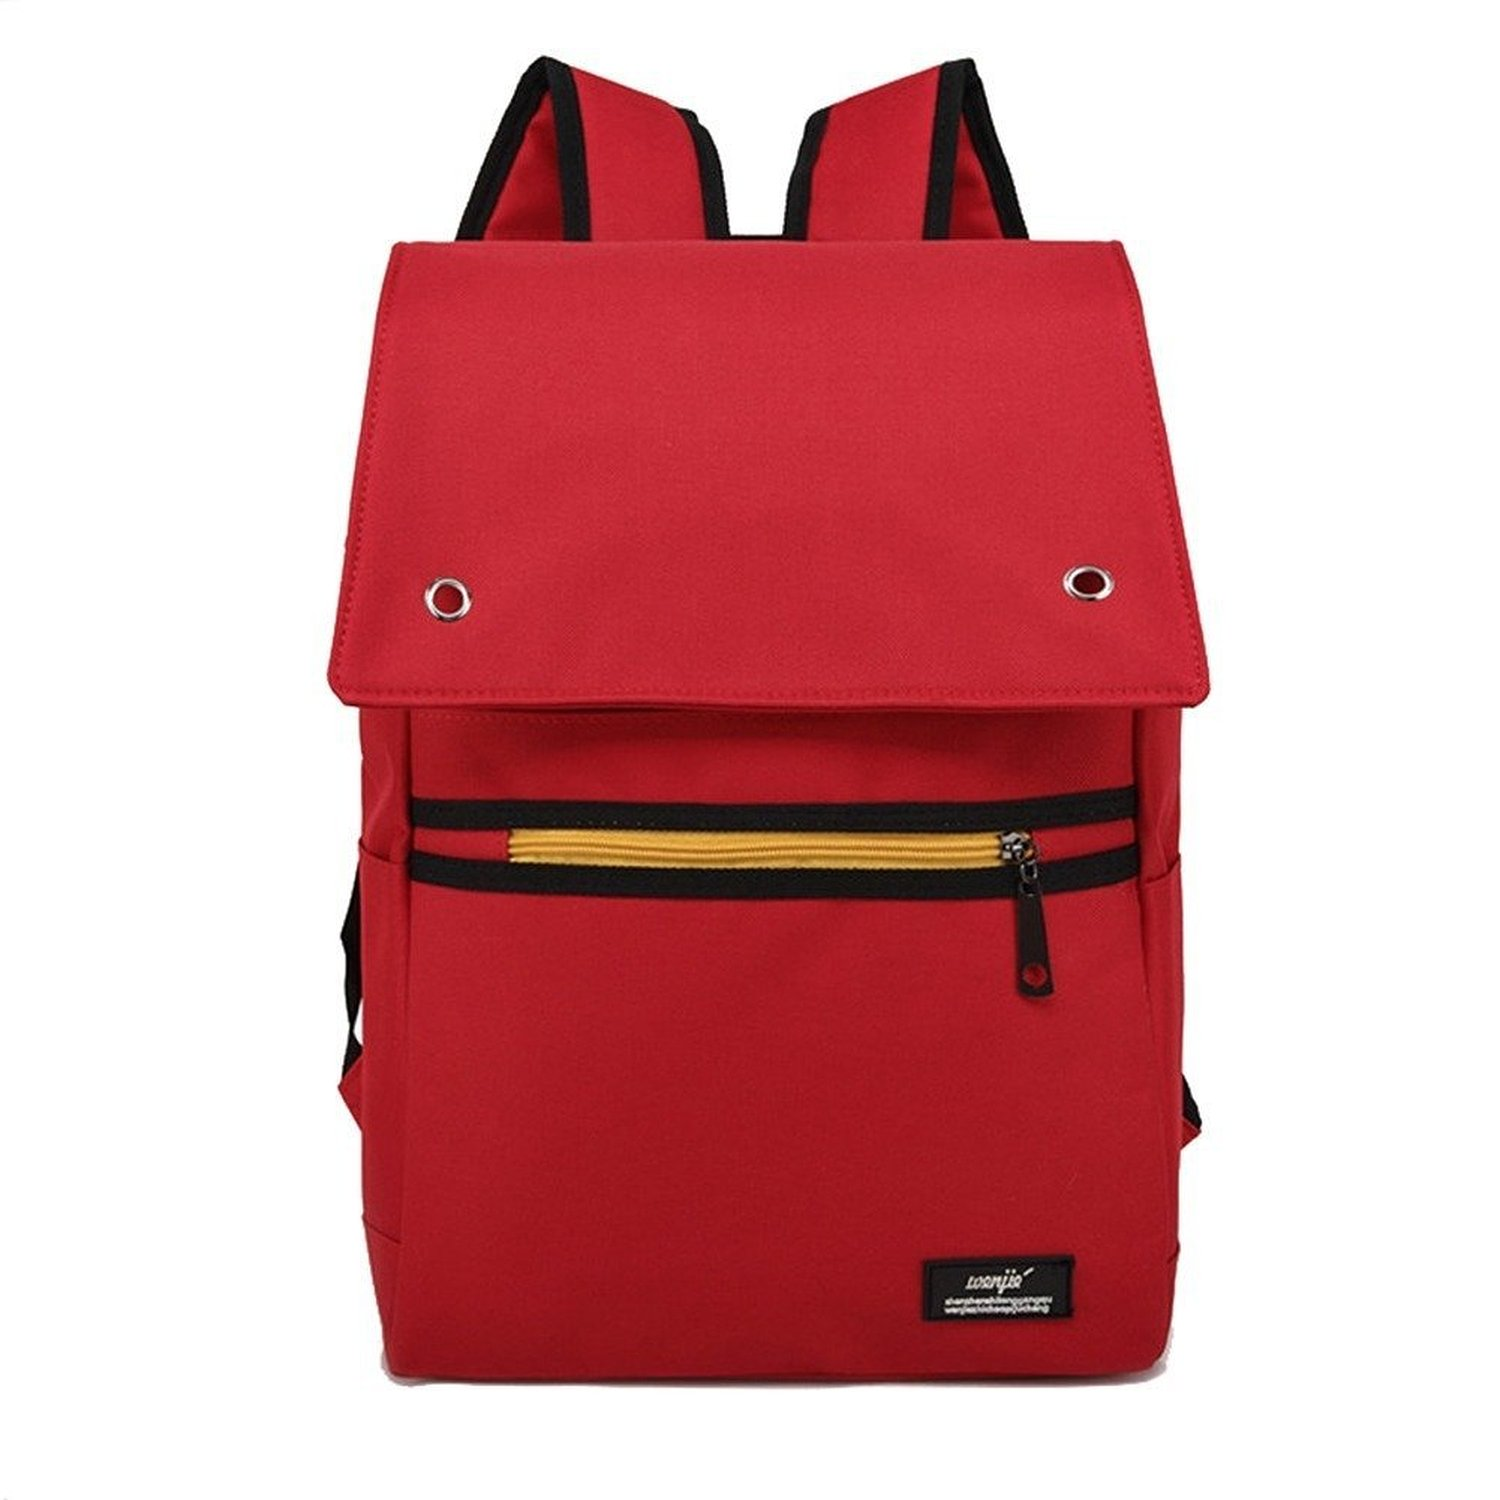 06eb1fd77c Get Quotations · Gahey Womens Rucksack Back Packs College Backpacks for  Travel